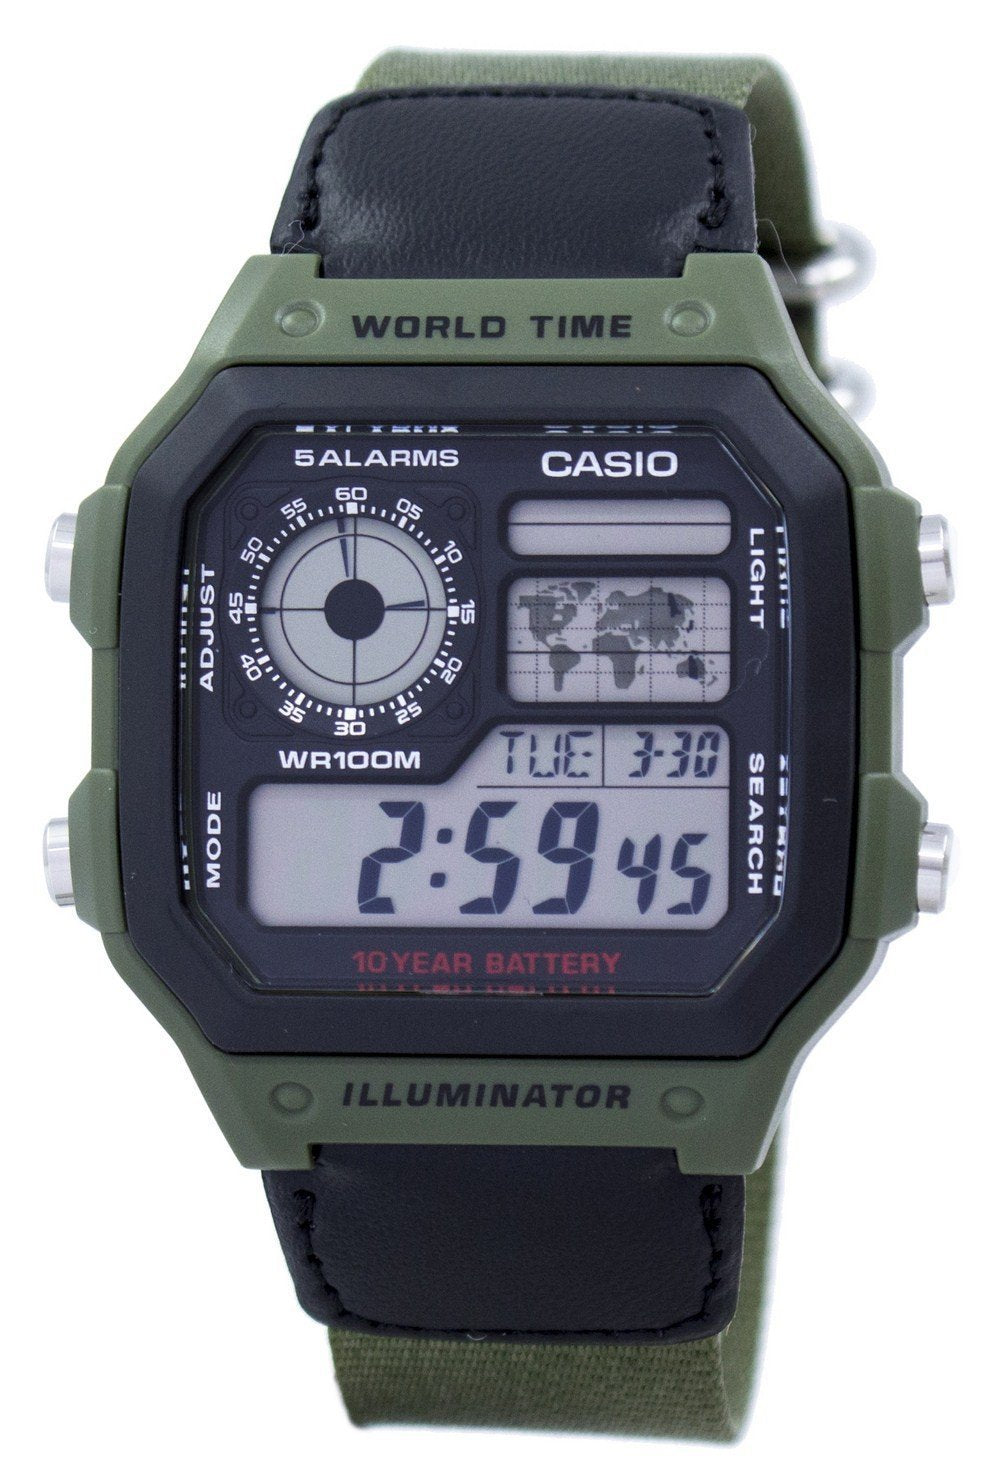 Casio World Time Alarm Digital AE-1200WHB-3BV AE1200WHB-3BV Men's Watch